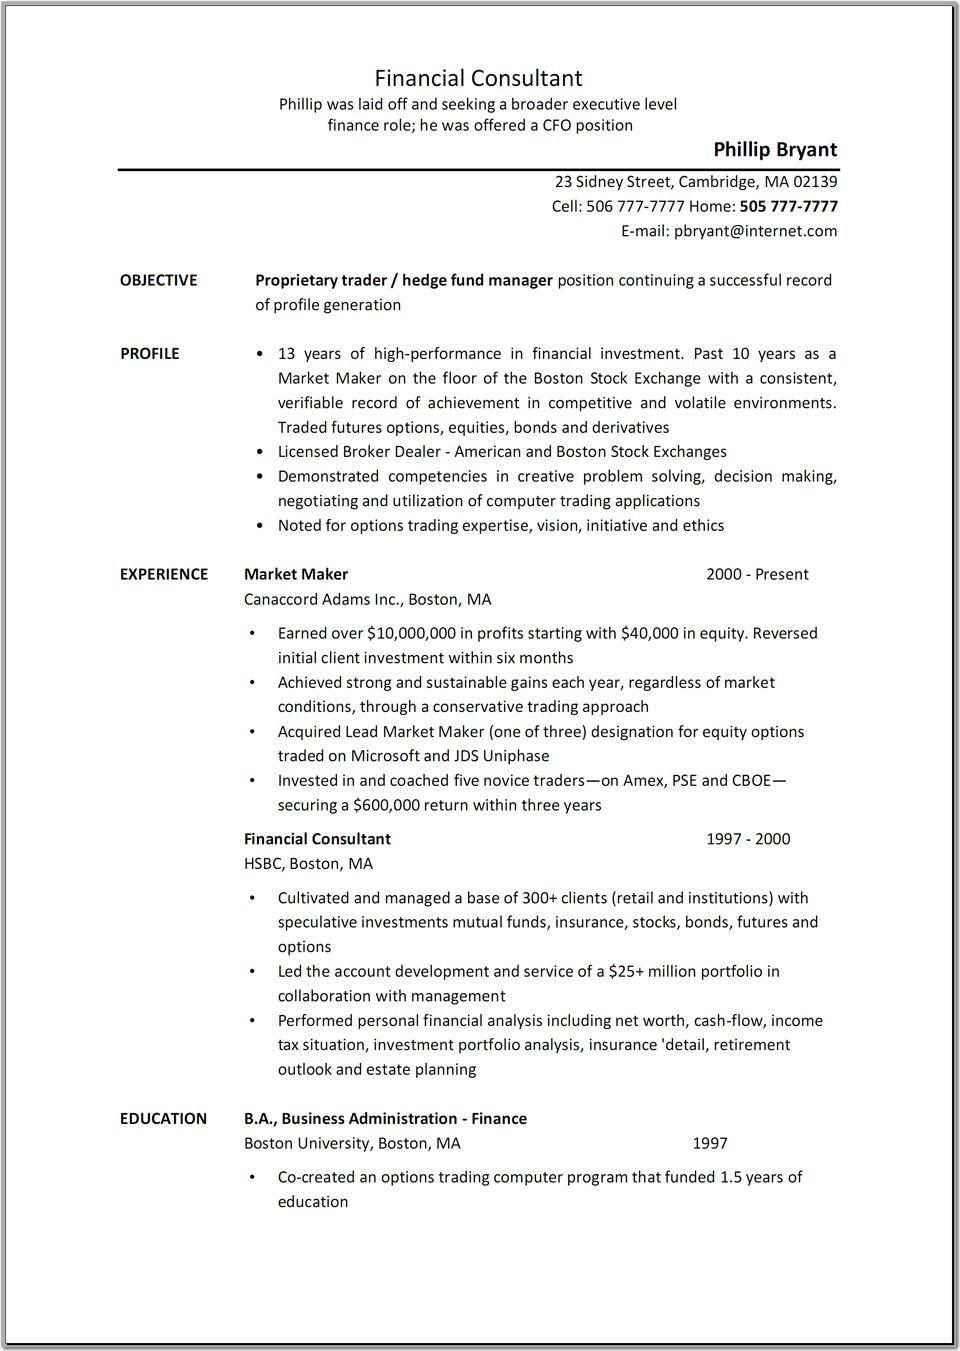 Resume Sample Resume For Consultant Job business consultant job description resume sample center resume